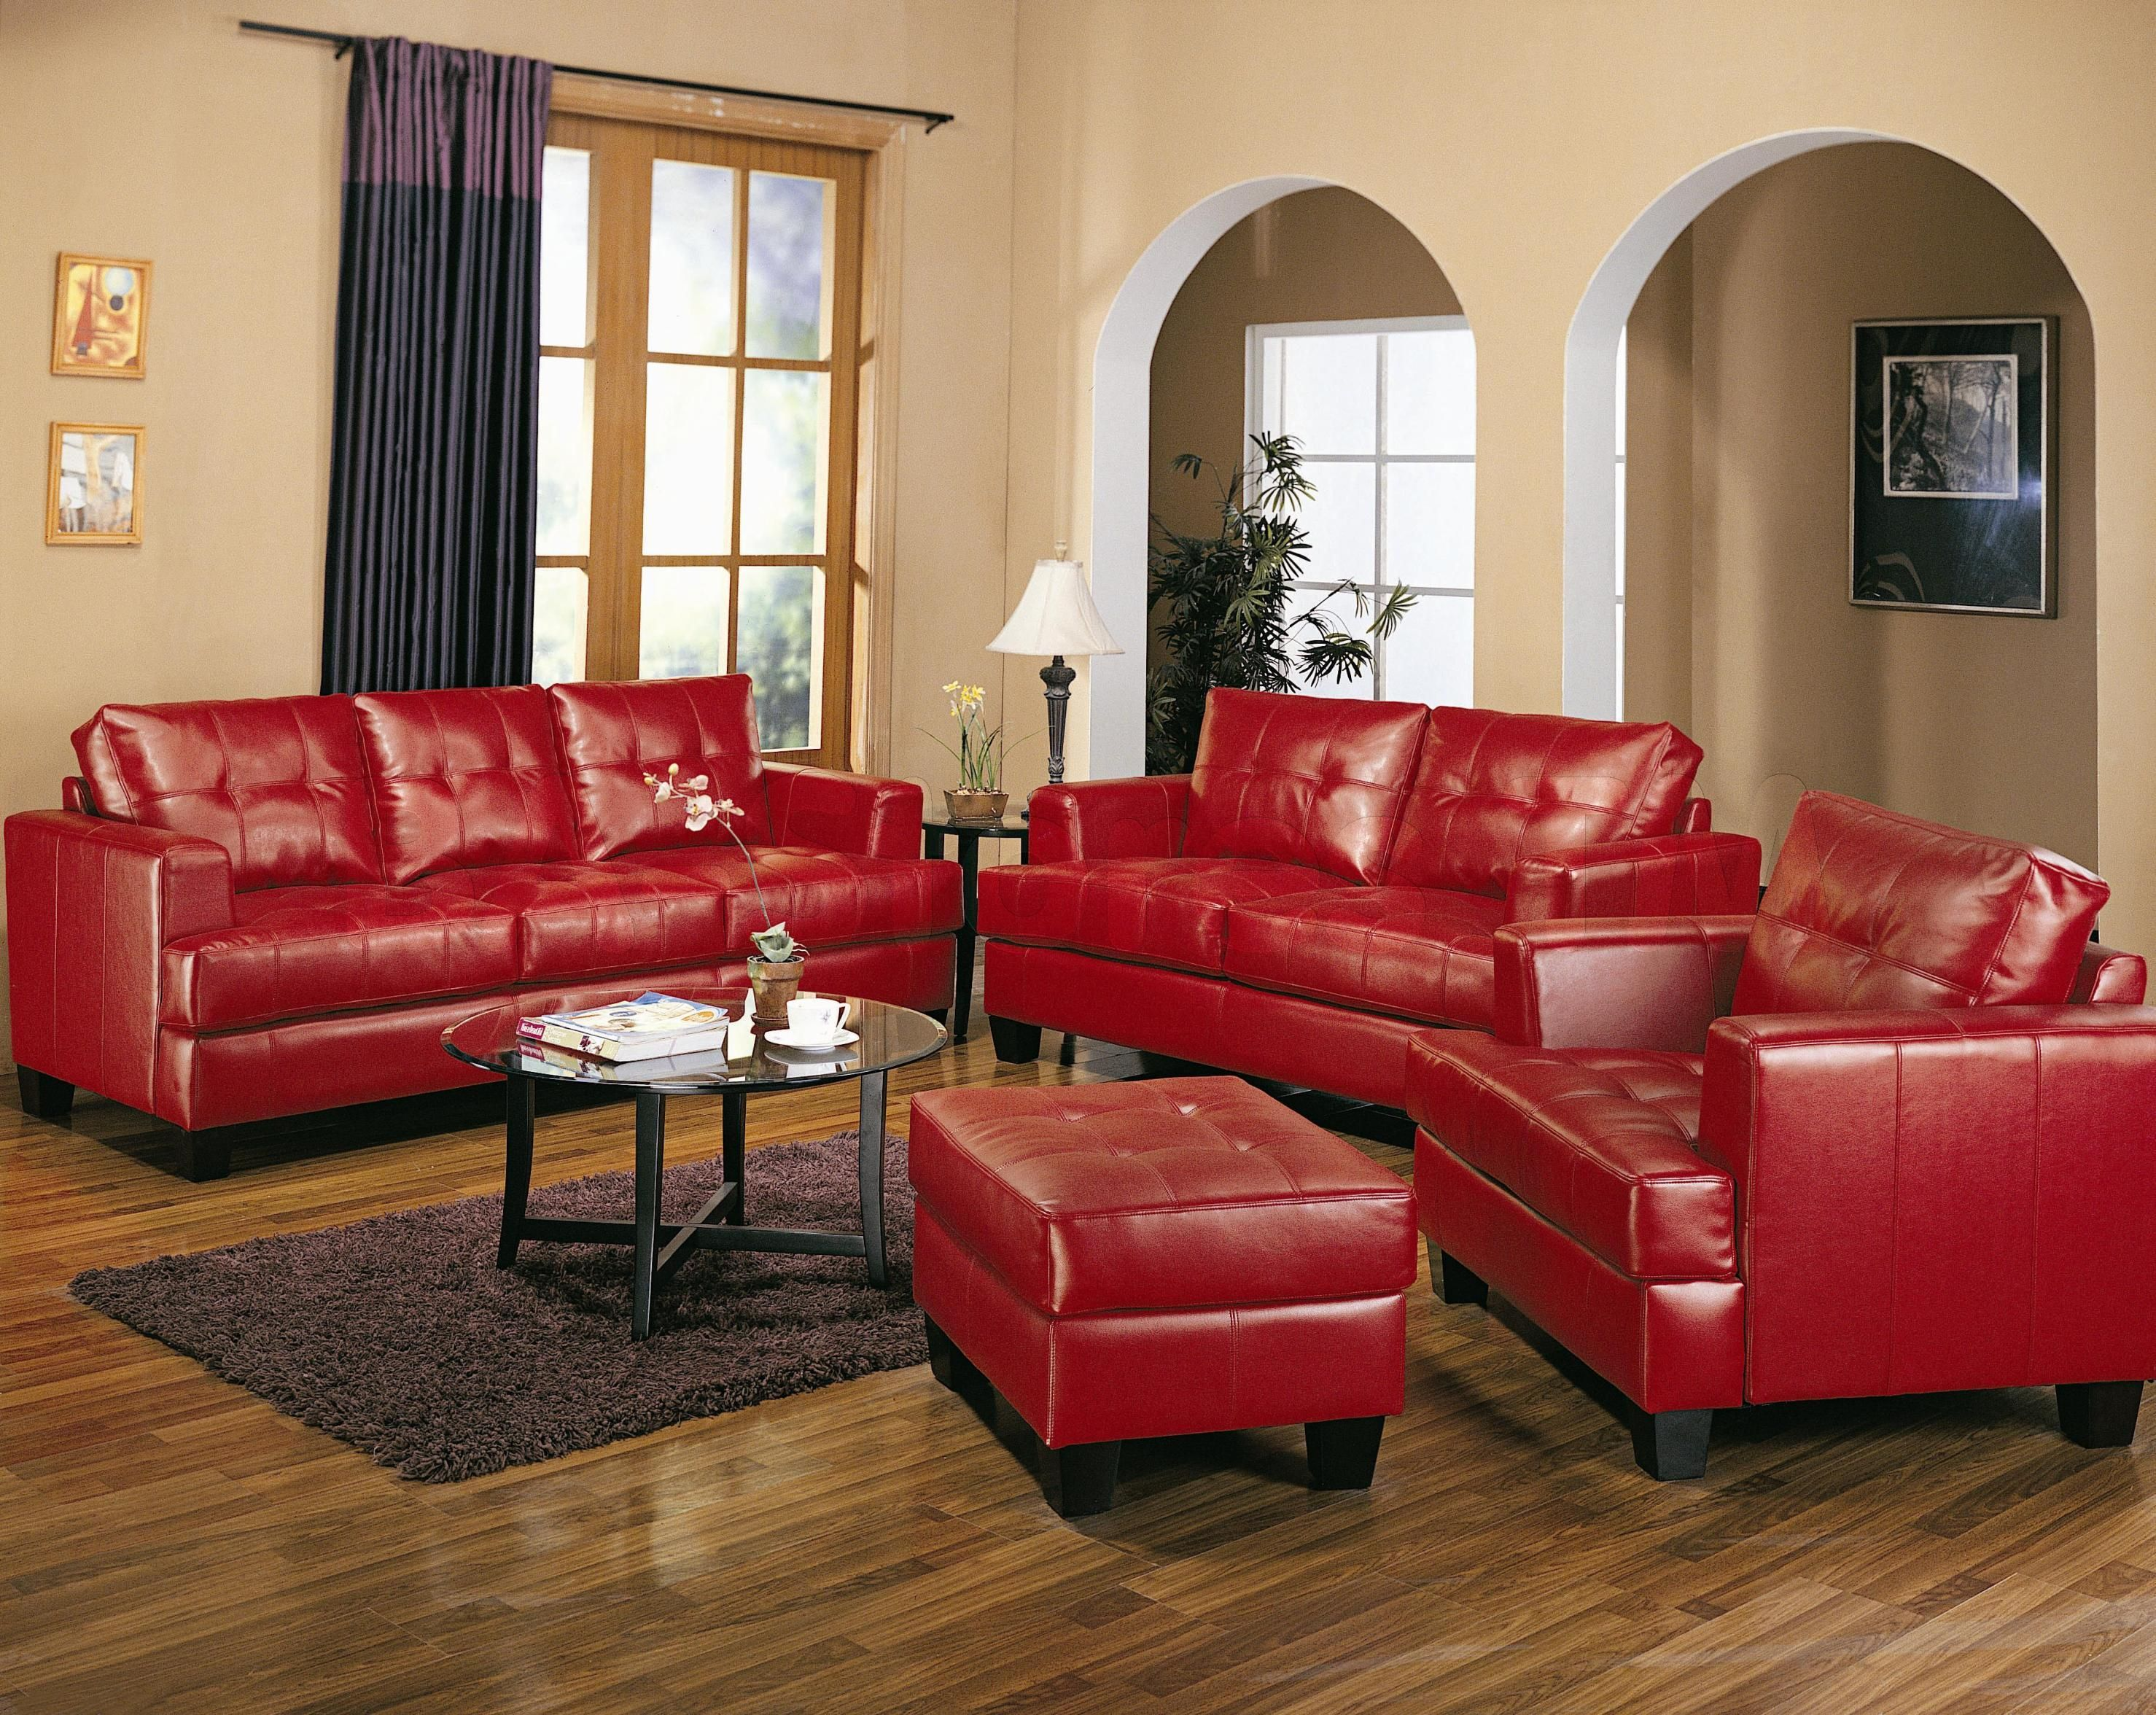 Living rooms with red couches red couch living room design